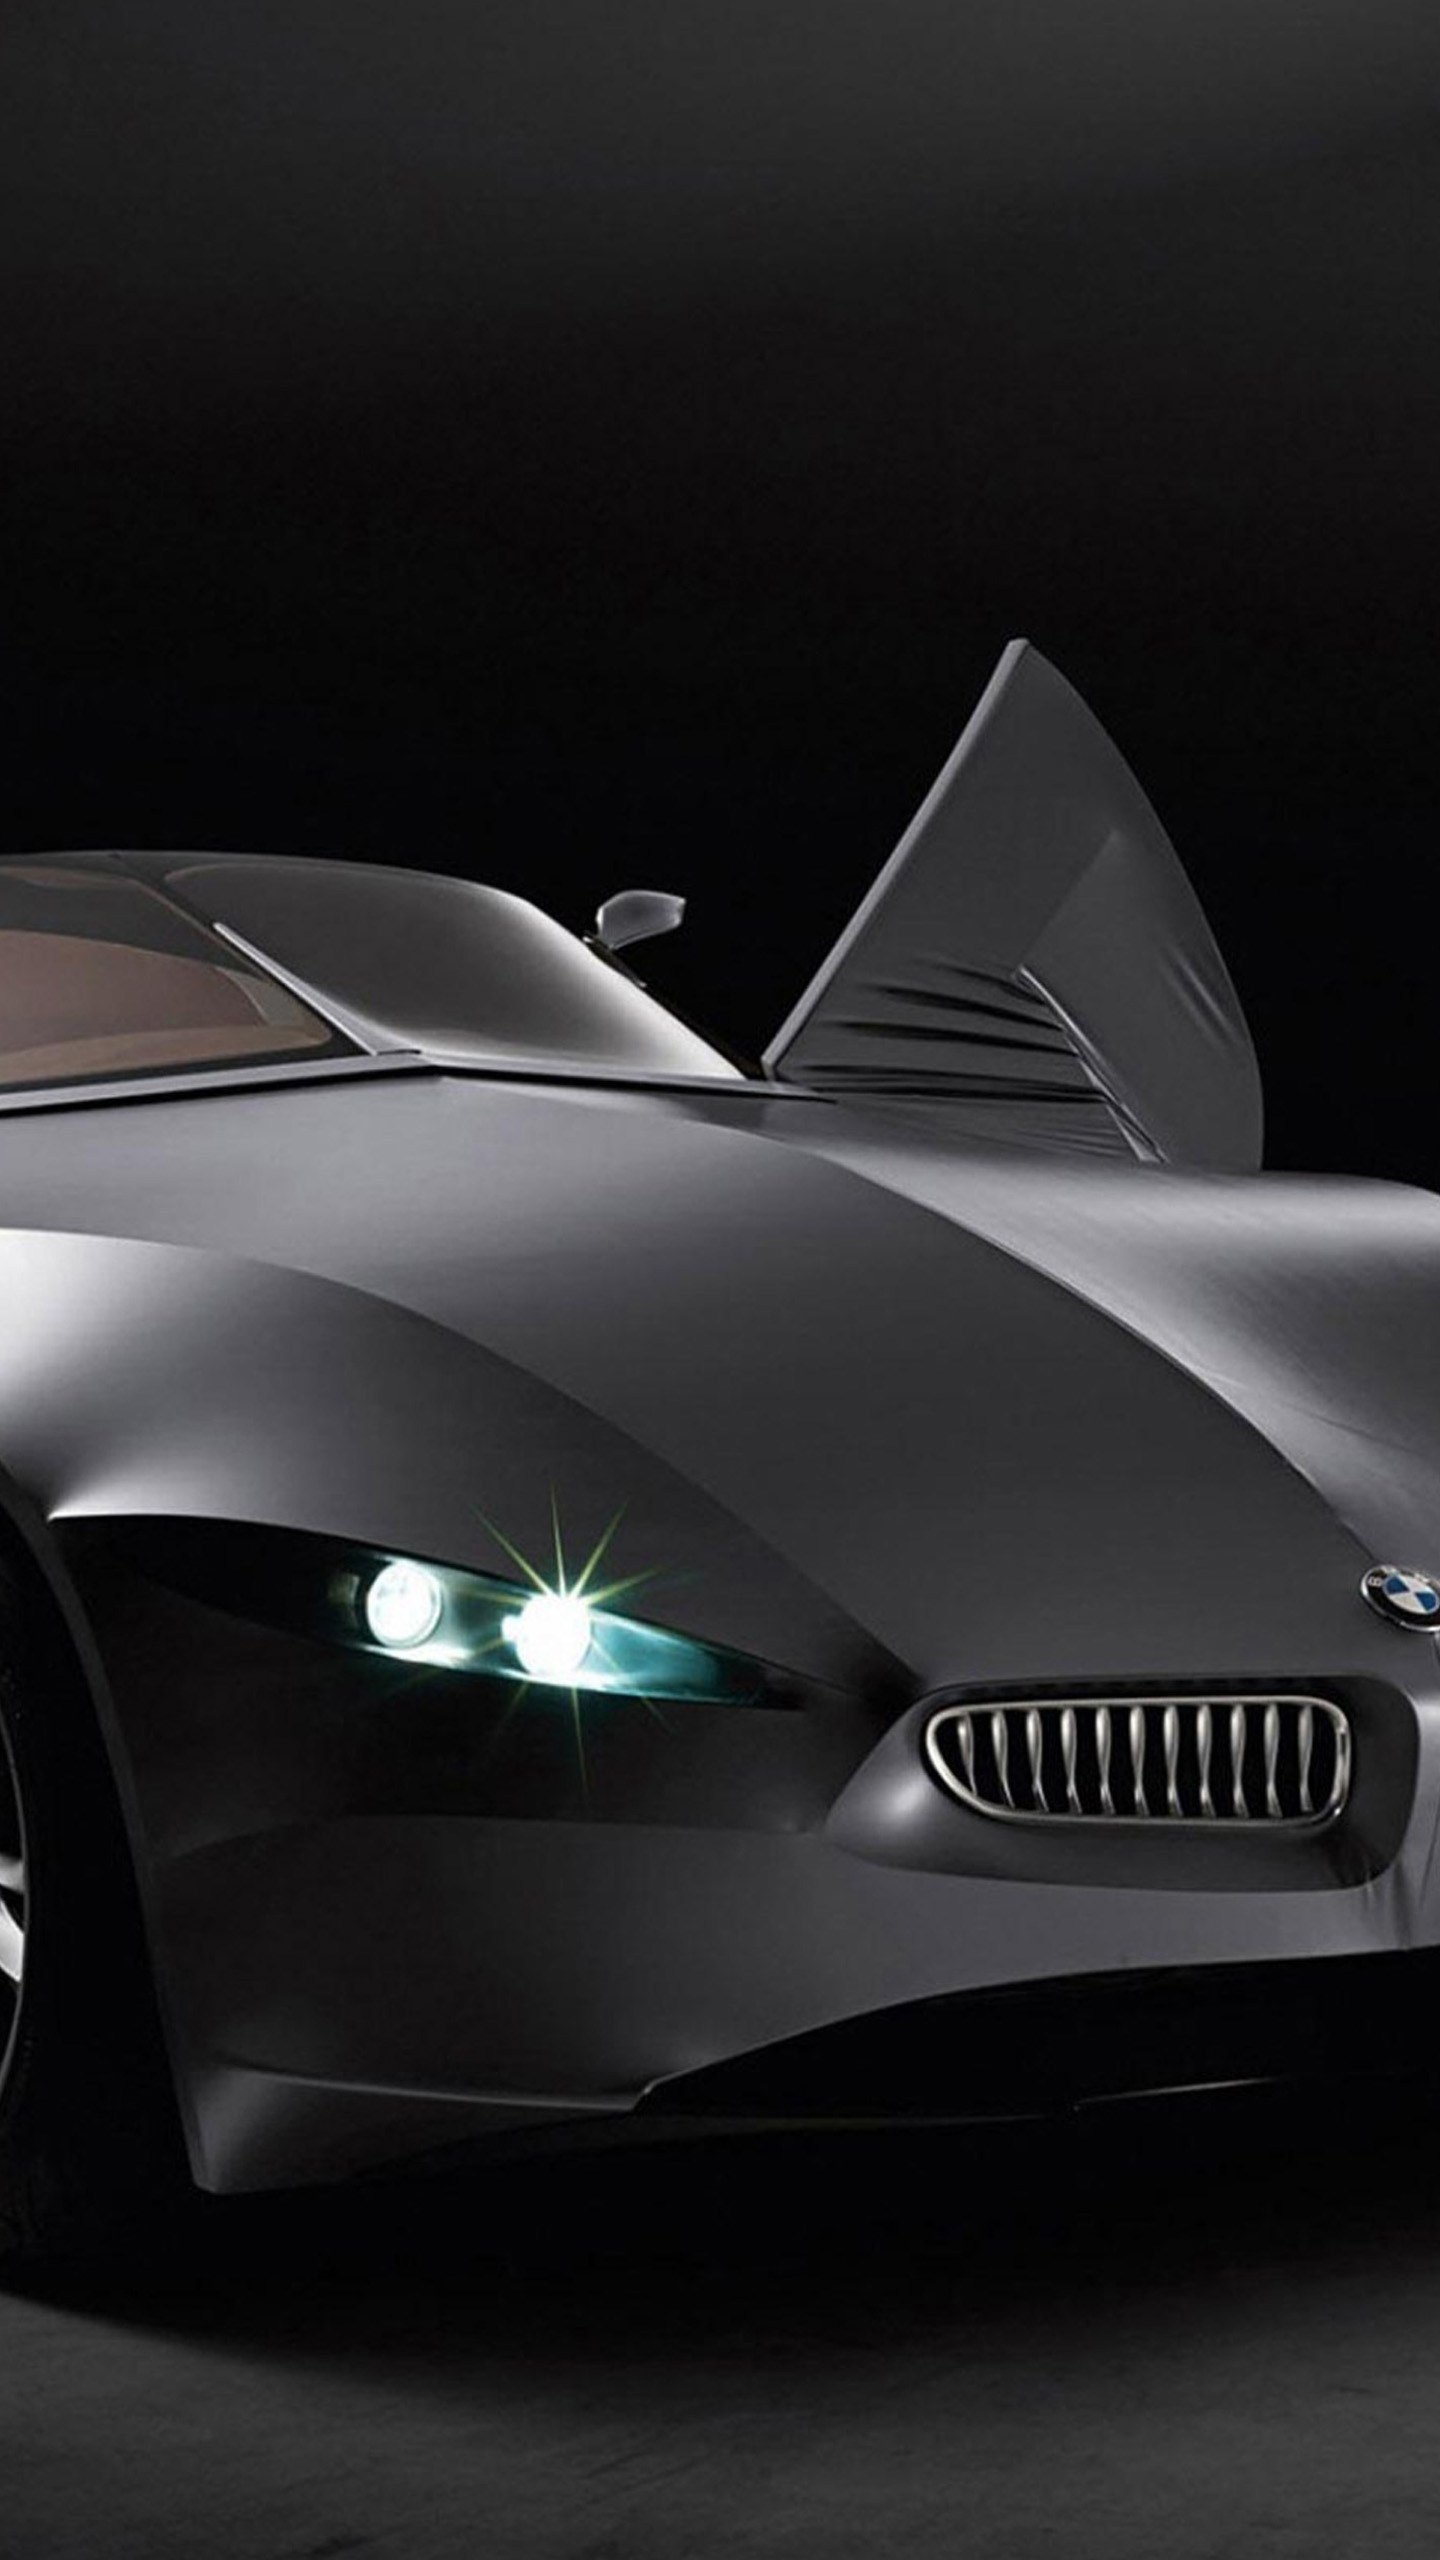 Samsung Galaxy S6 Edge Wallpapers Black Bmw Z4 Hd Android S6 Edge Plus Hd 289765 Hd Wallpaper Backgrounds Download